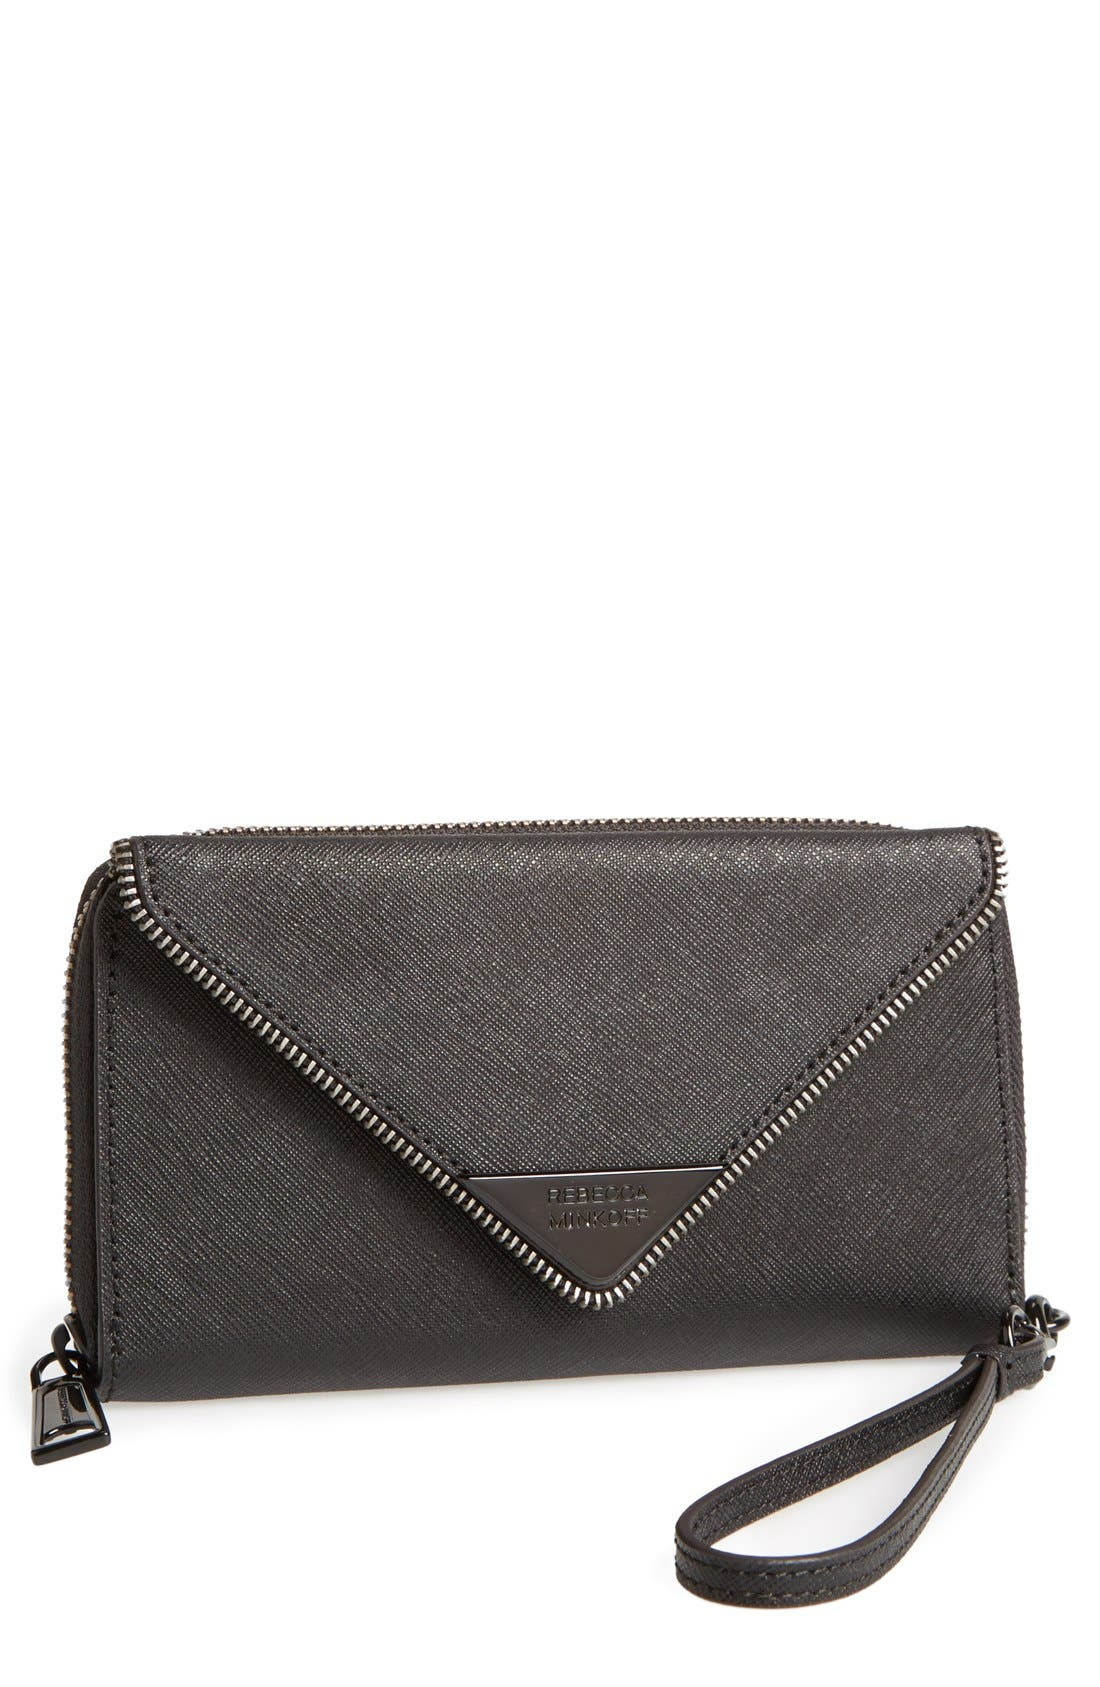 REBECCA MINKOFF,                             'Zoey Tech' Wristlet,                             Main thumbnail 1, color,                             001